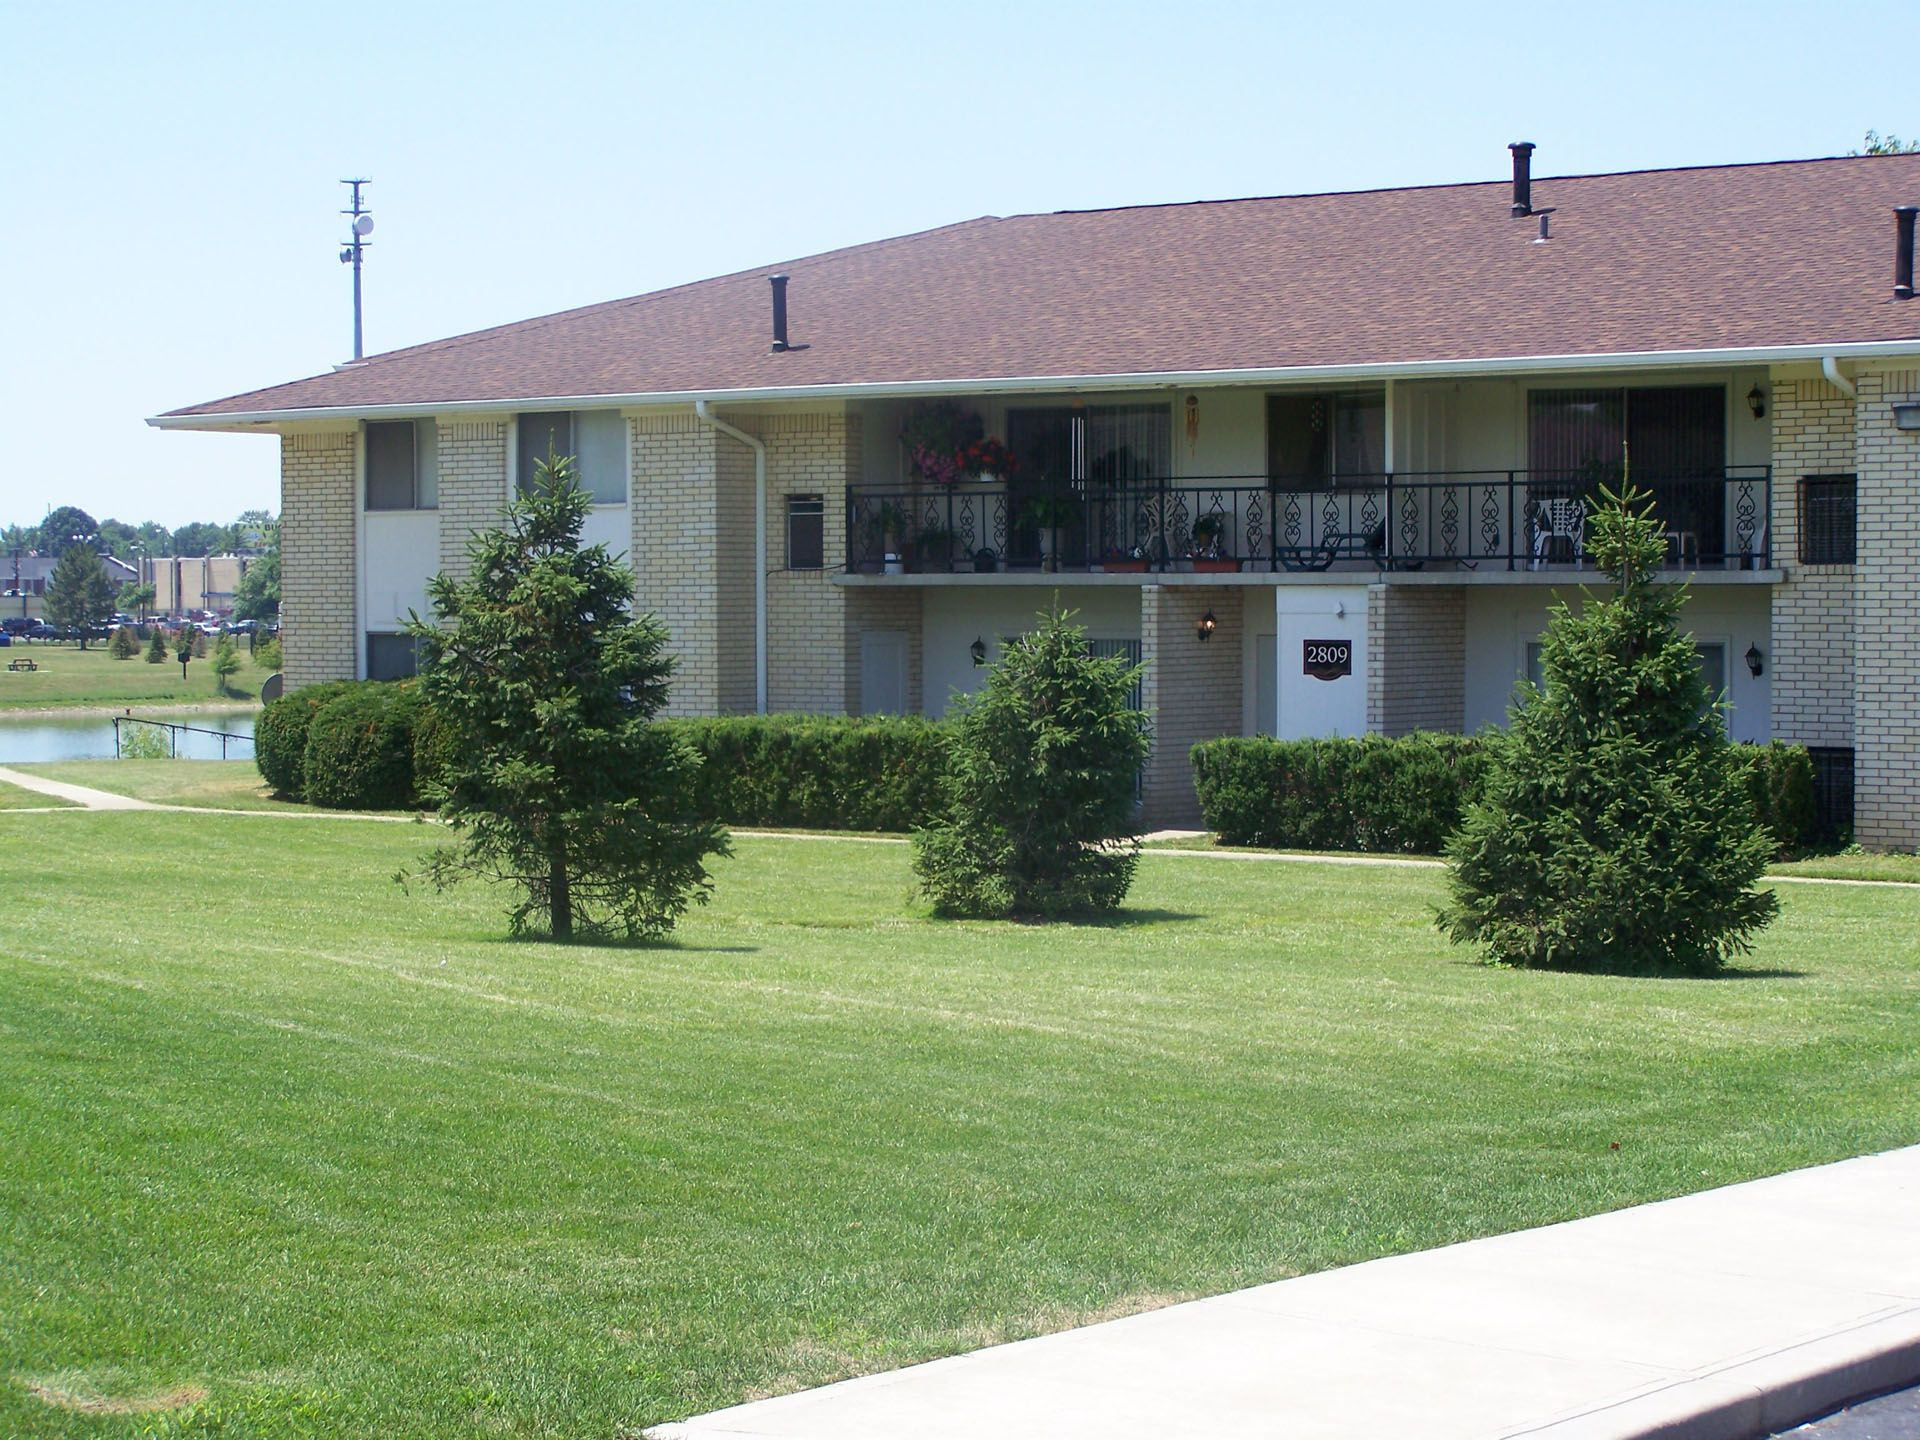 Willowbrook lake apartments in indianapolis indiana for 3 bedroom apartments indianapolis